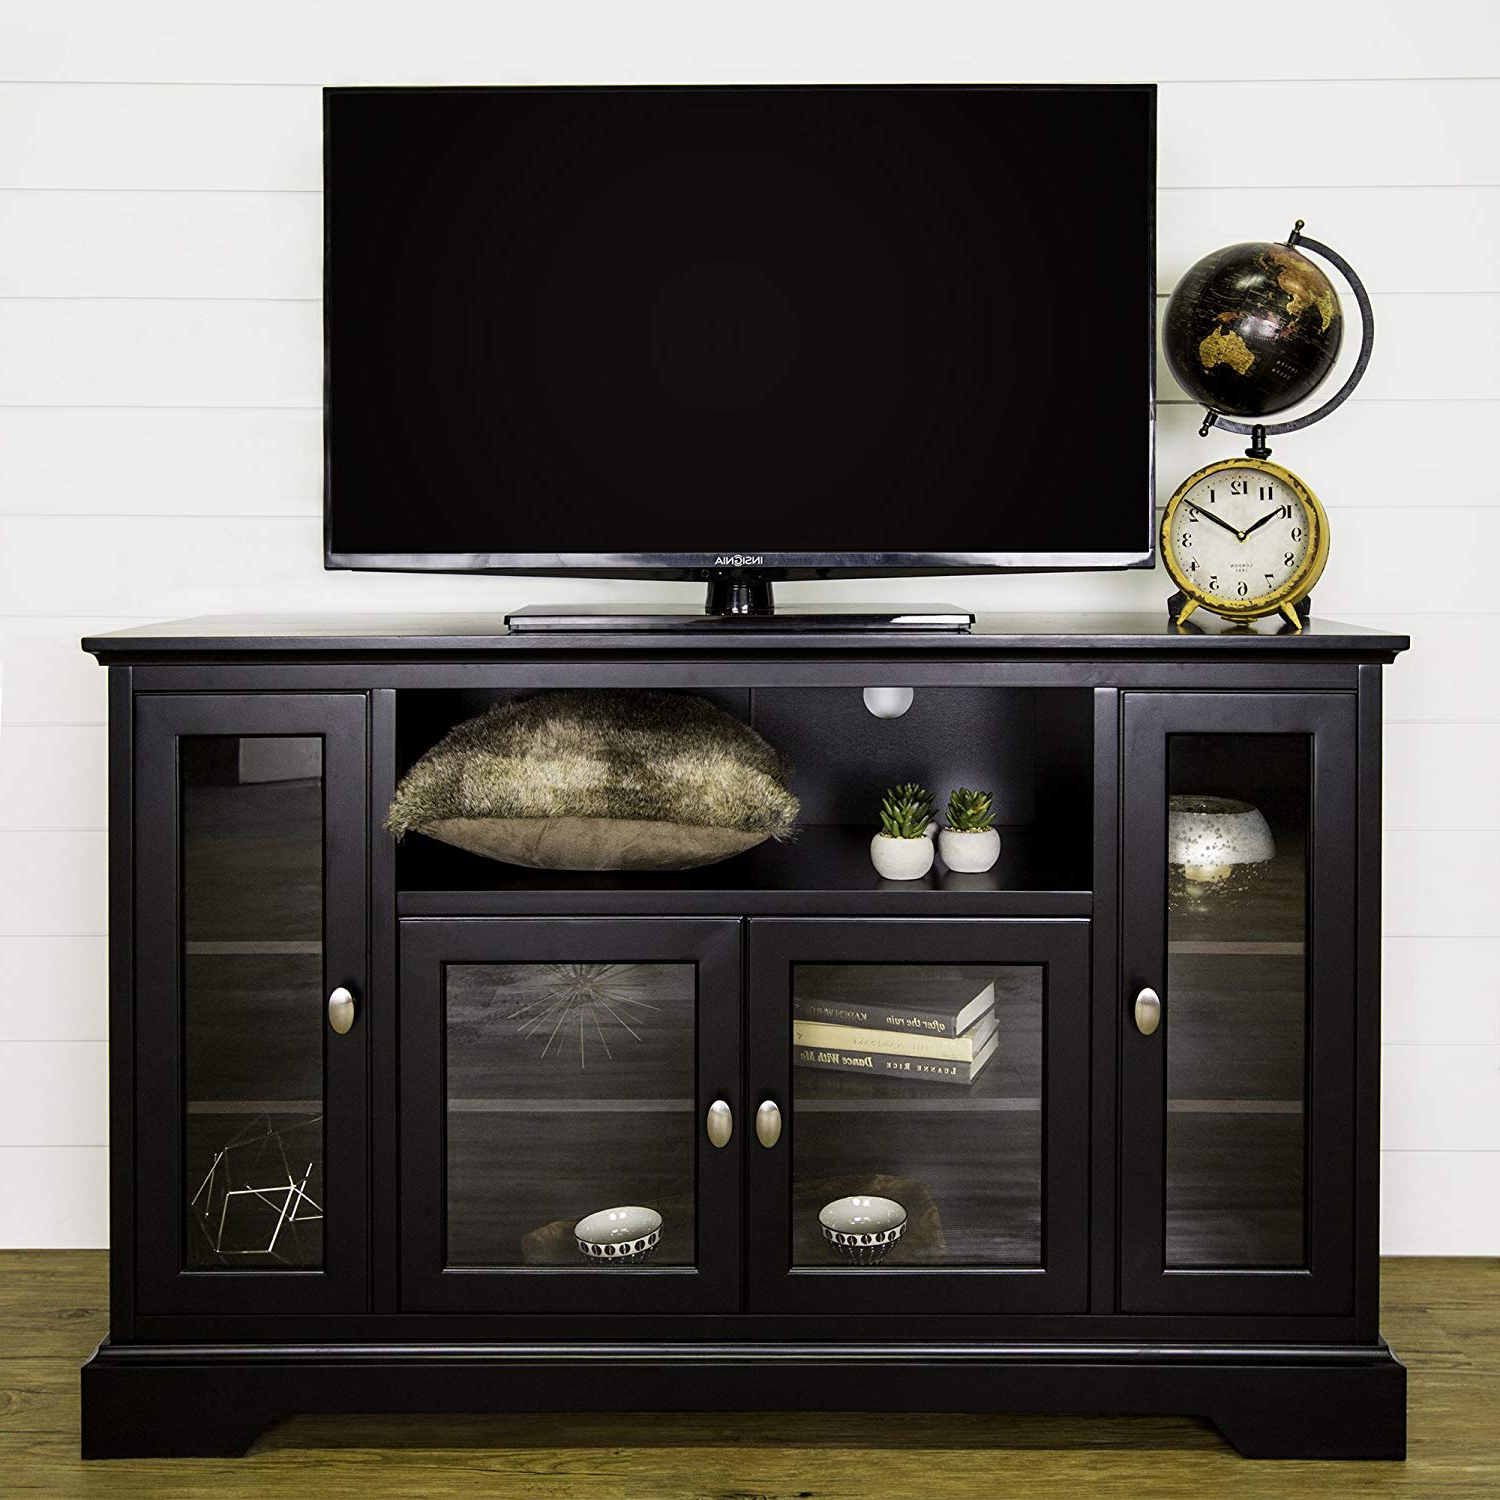 "Amazon: We Furniture 52"" Wood Highboy Style Tall Tv Stand For Well Known Highboy Tv Stands (View 3 of 20)"